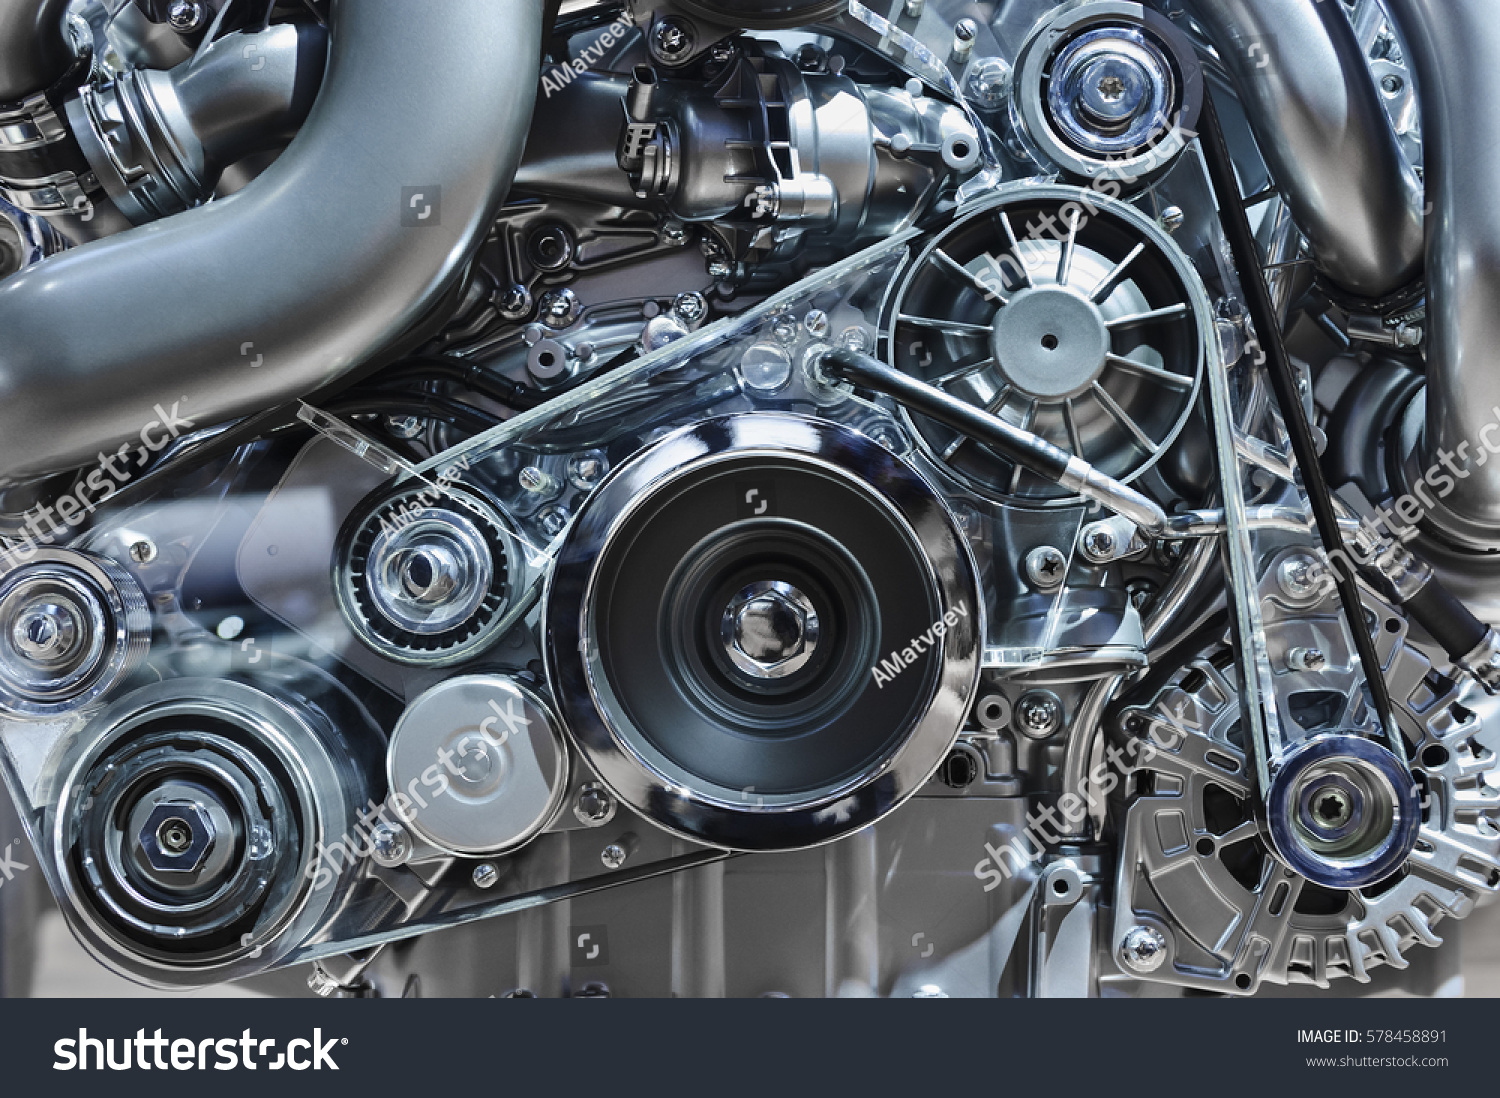 Car Engine Concept Modern Vehicle Motor Stock Photo